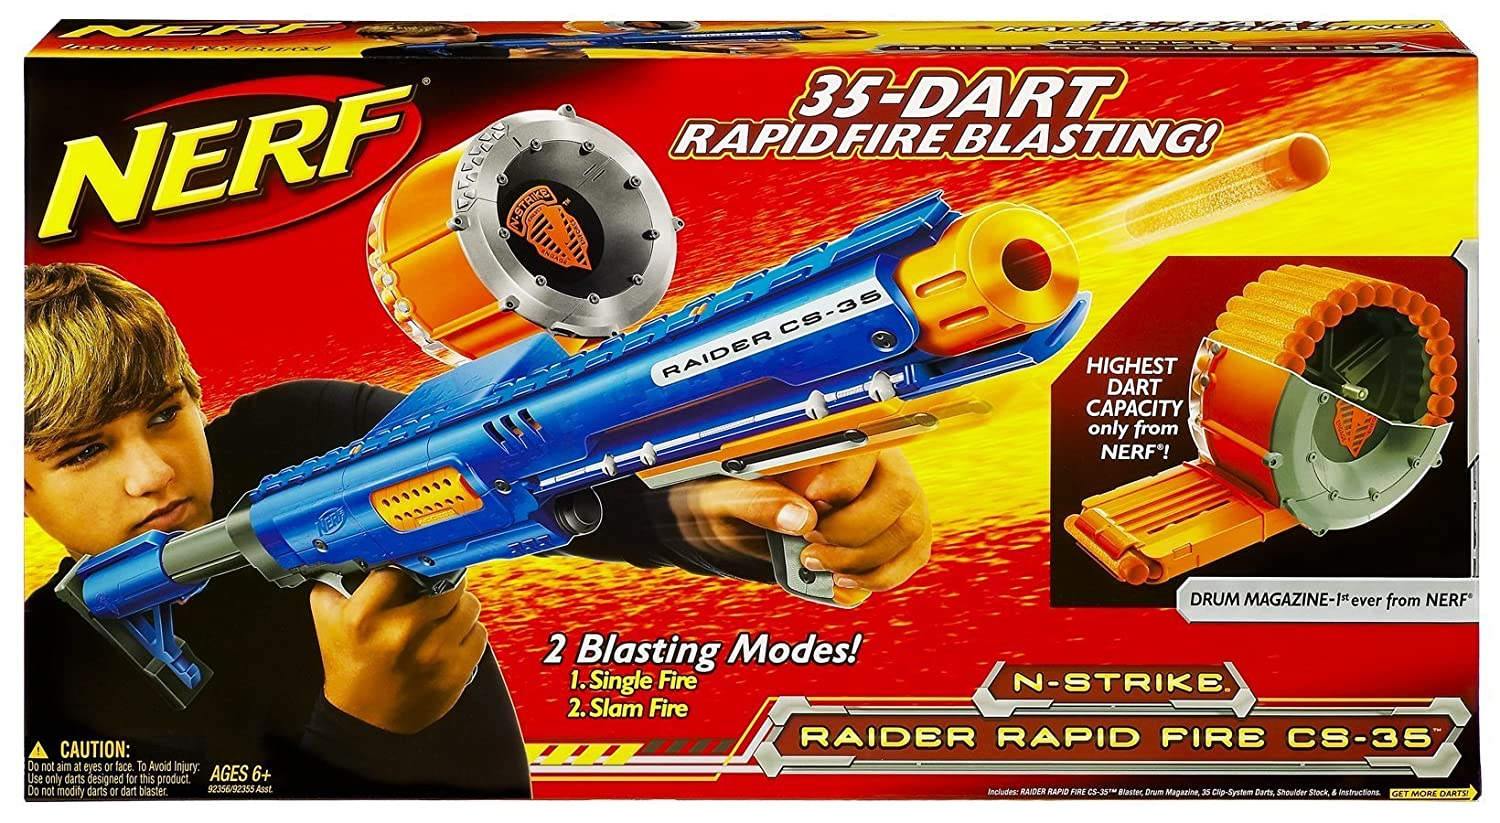 Amazon.com: Nerf N-Strike Raider Rapid Fire CS-35 Dart Blaster - Blue: Toys  & Games